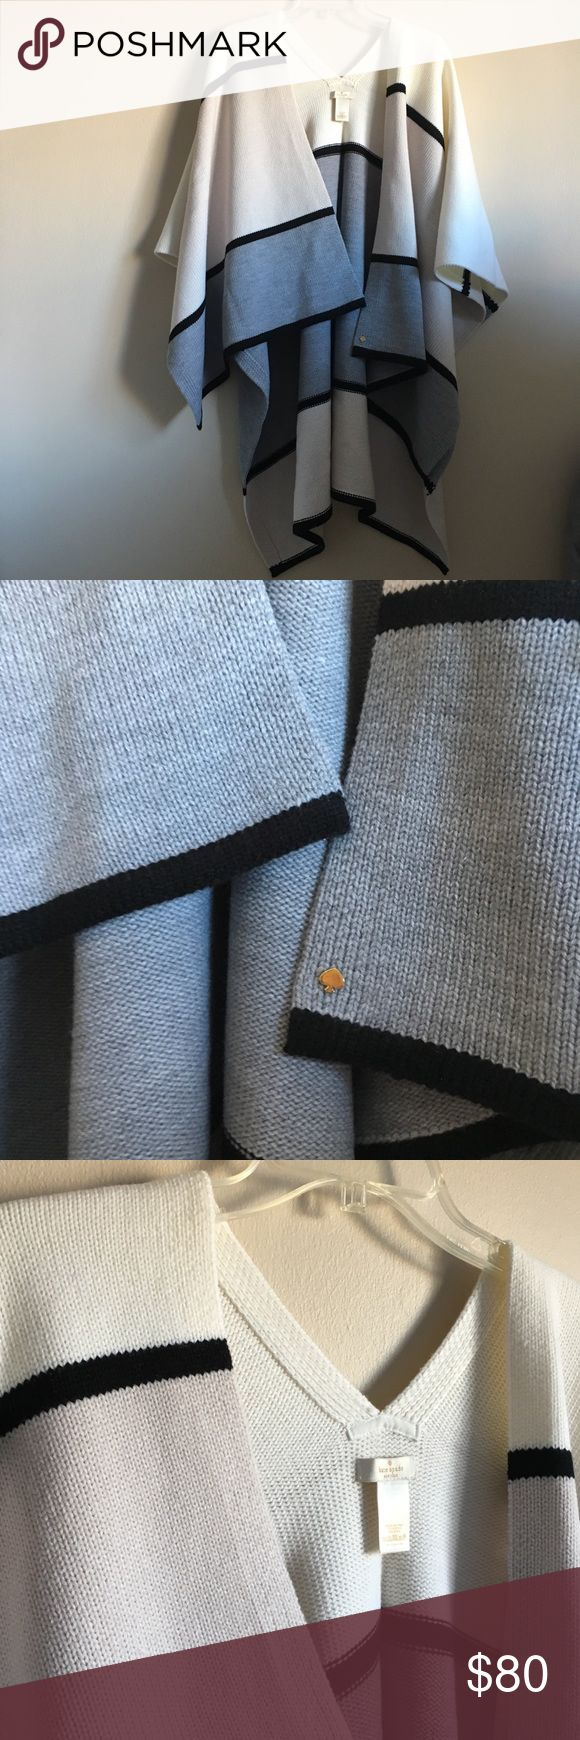 """Kate Spade Mondrian Colorblock Poncho Kate Spade Mondrian Colorblock Ruana Over the Shoulder Poncho  One size 70 acrylic, 30 wool Approx. length 28""""  In excellent pre-owned condition kate spade Sweaters Shrugs & Ponchos"""